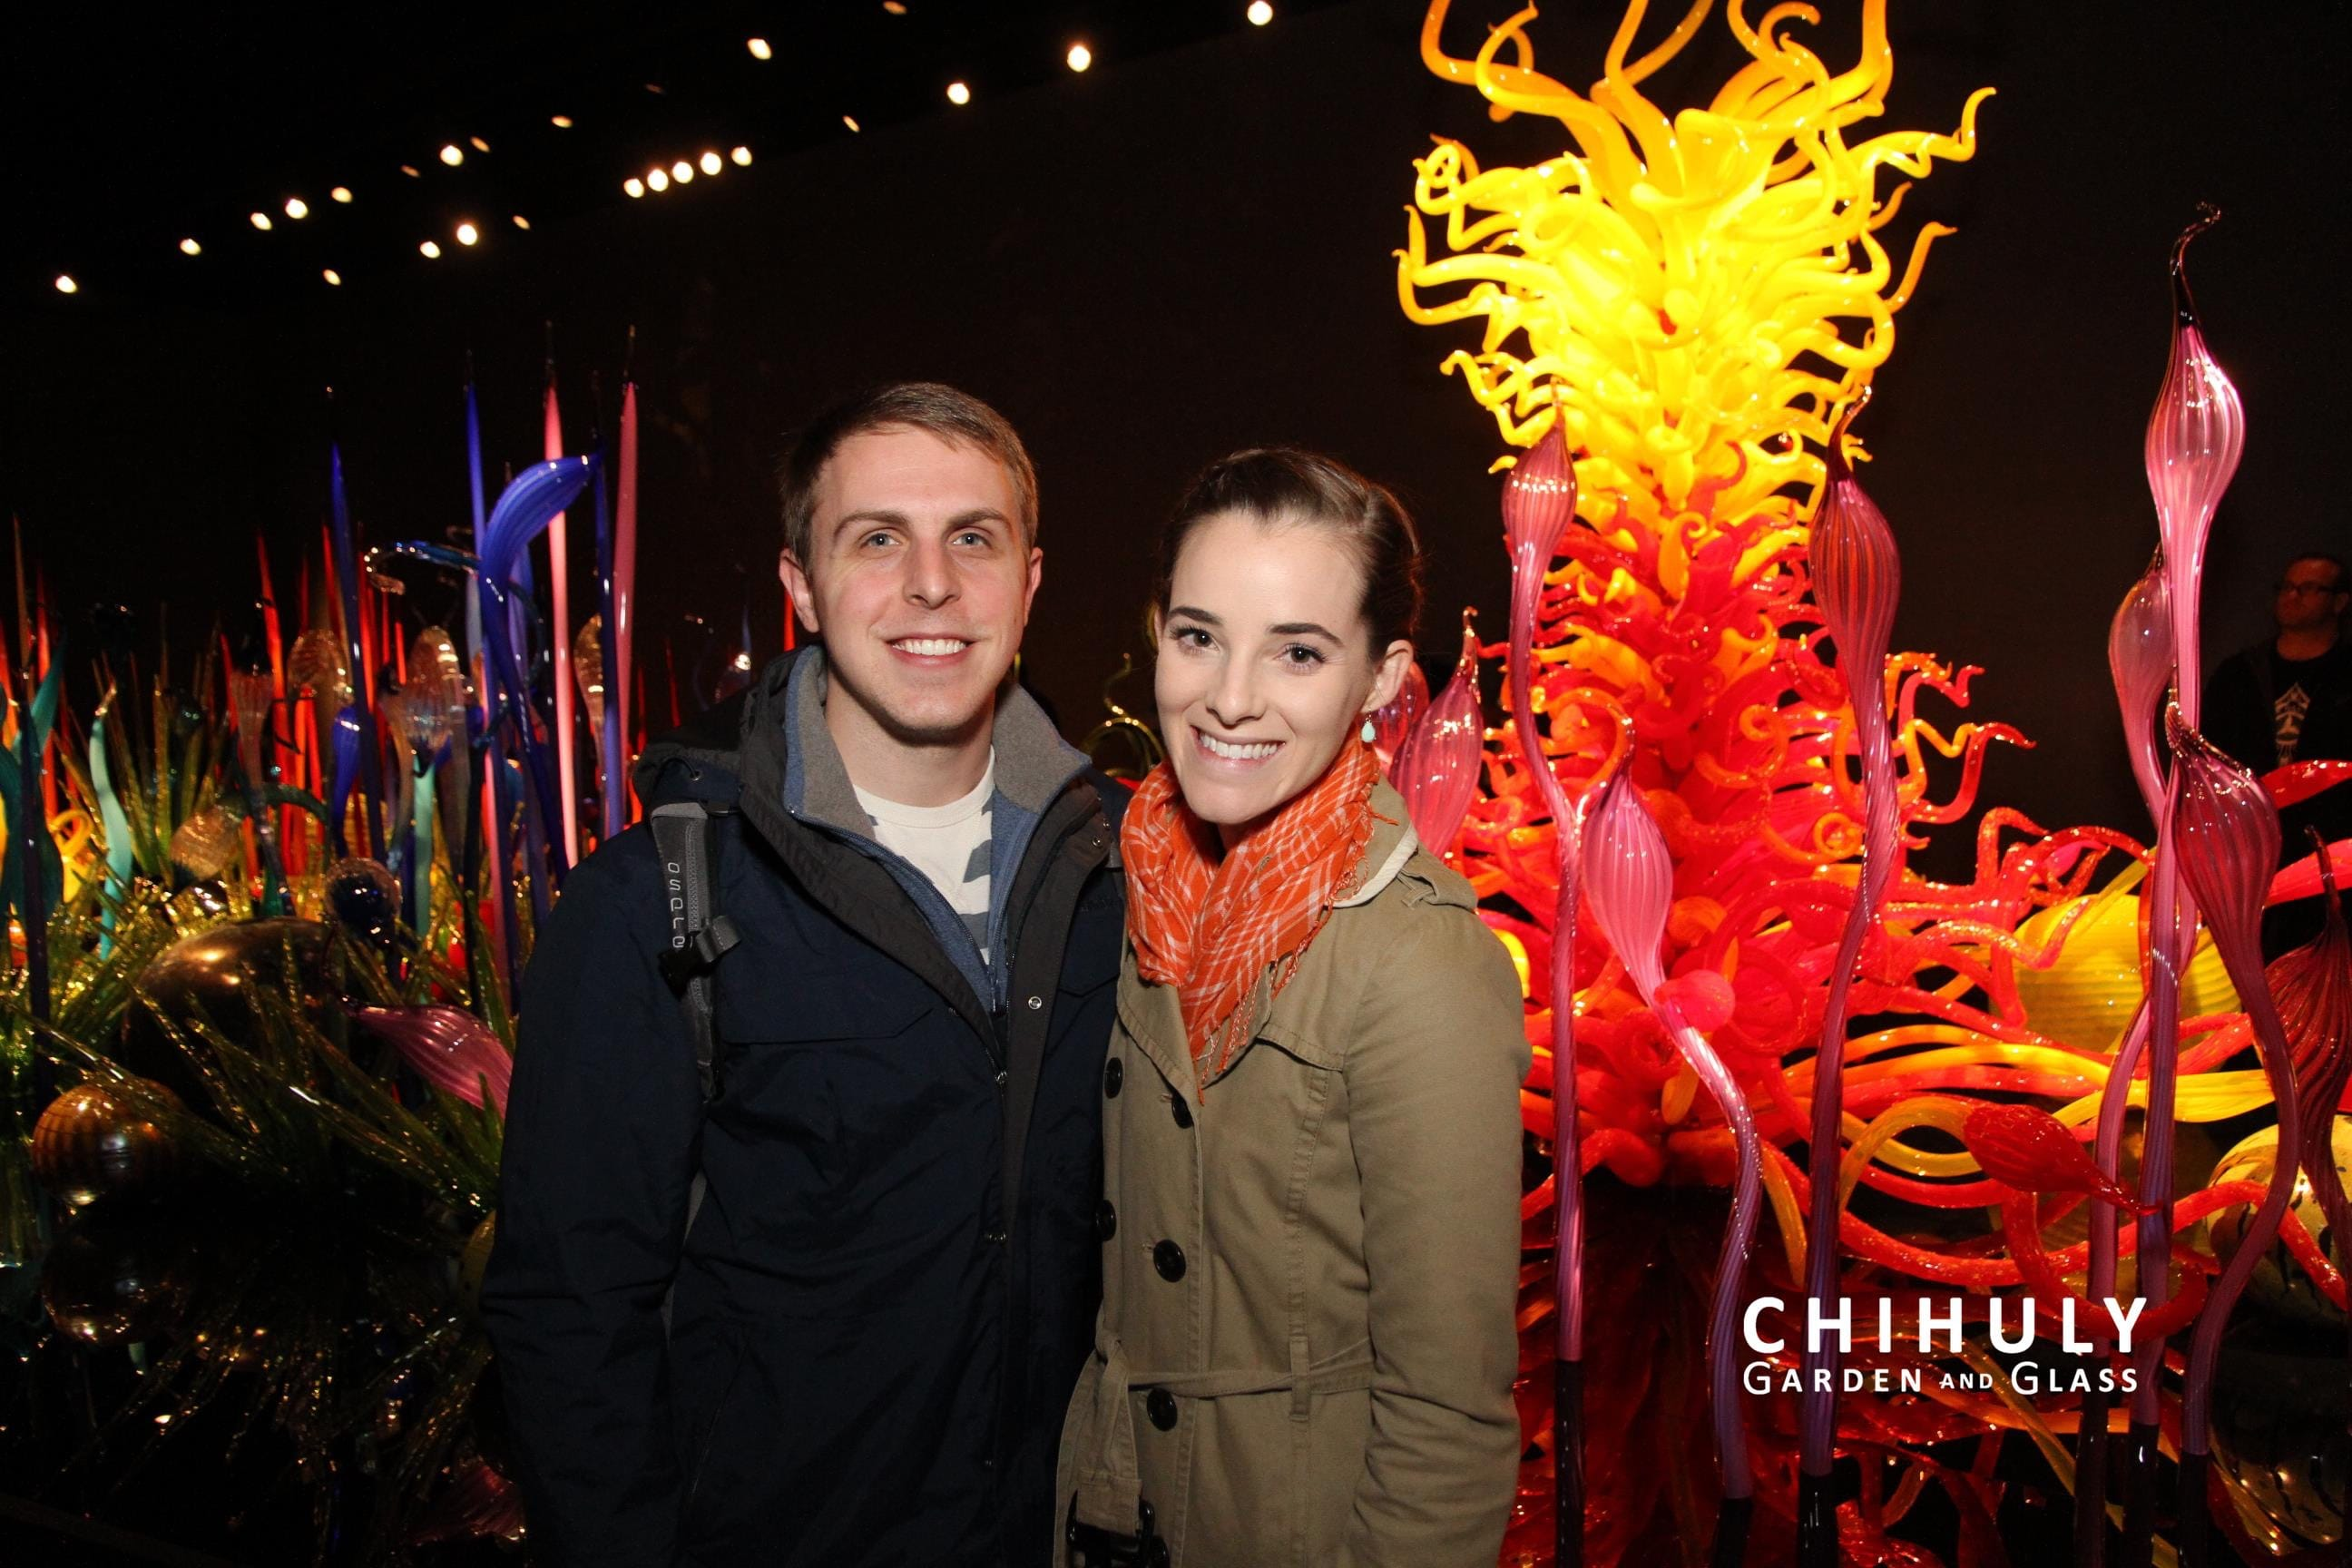 At the Chihuly Garden & Glass, they give you these super cheesy awesome photos for free. :)